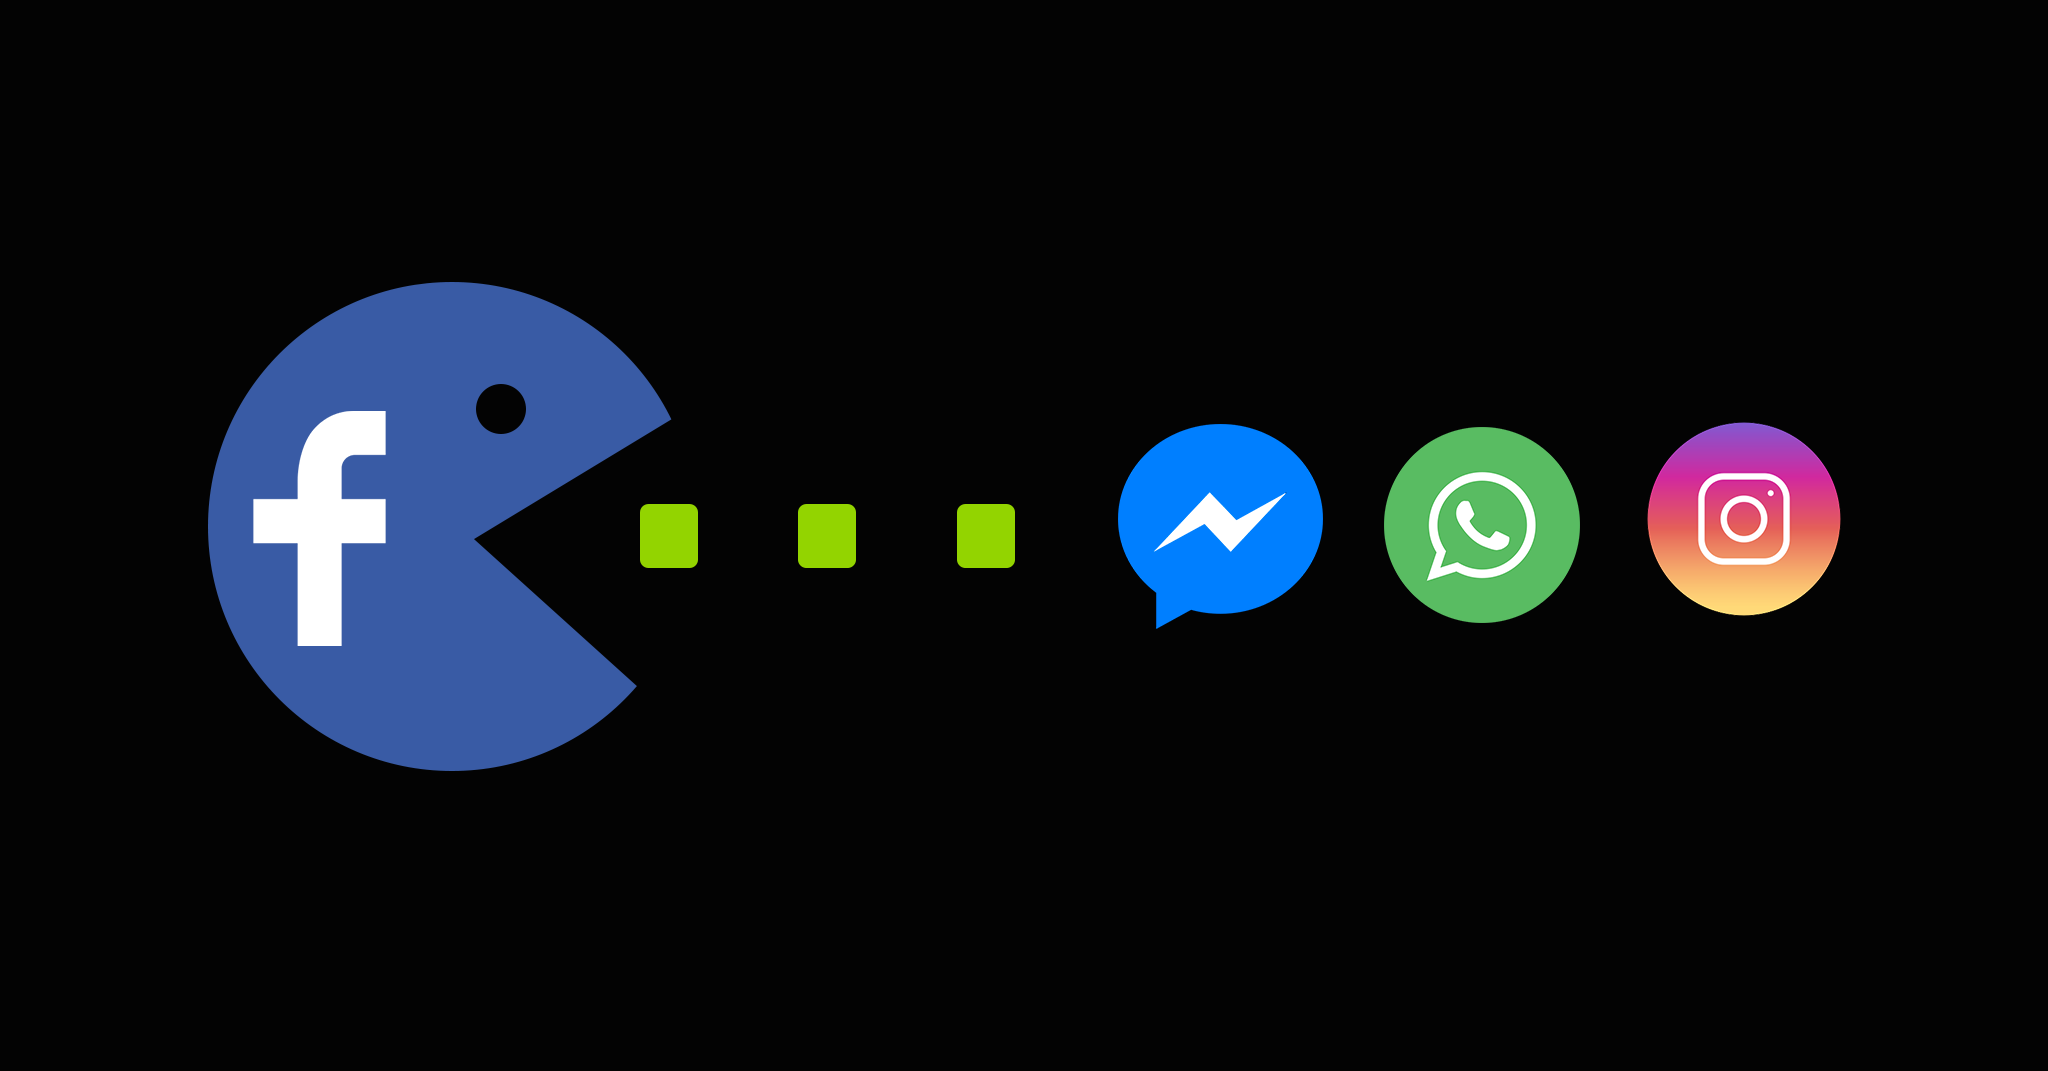 Ununica chat per Facebook WhatsApp e Instagram